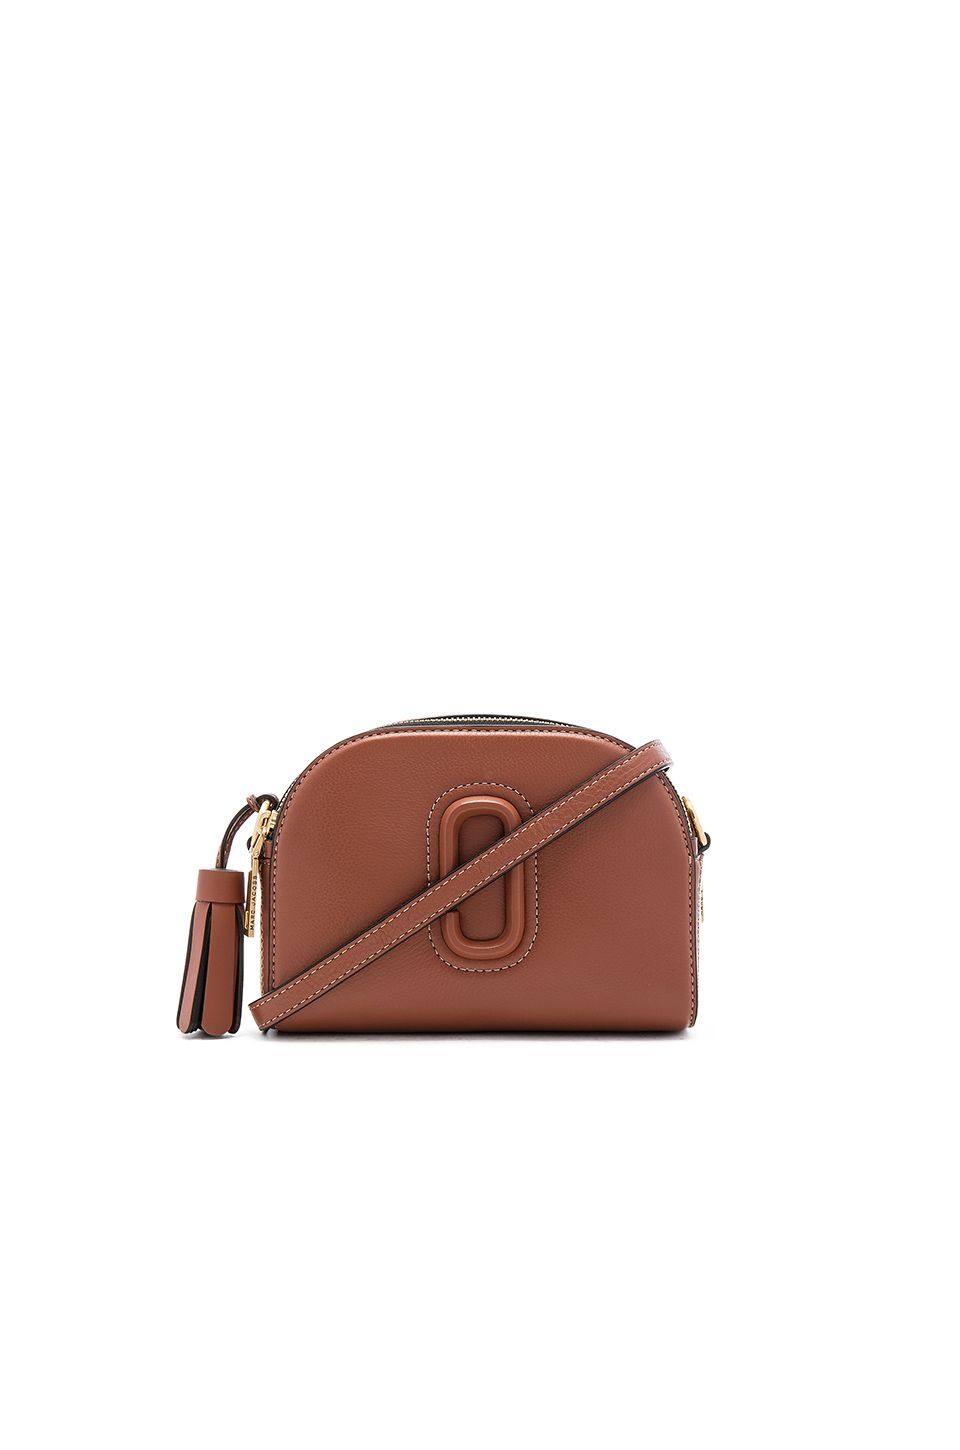 2c457d3616ed MARC JACOBS Shutter Small Camera Bag.  marcjacobs  bags  shoulder bags   leather  nylon  lining